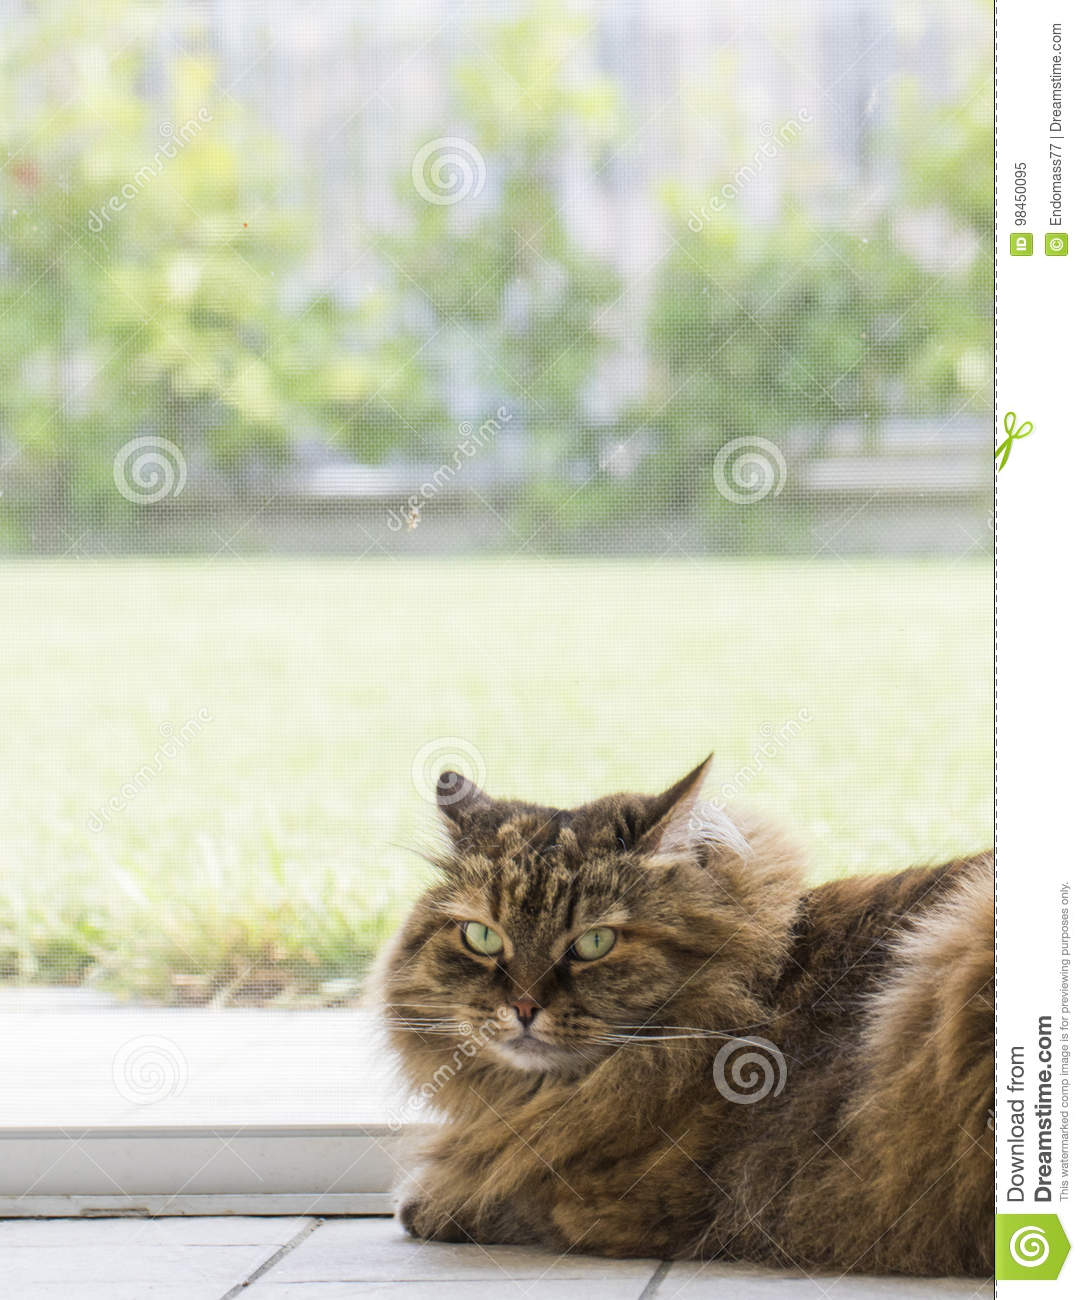 Adorable Haired Cat Of Siberian Breed In Livestock Hypoallergenic Domestic Kitten With Long Hair